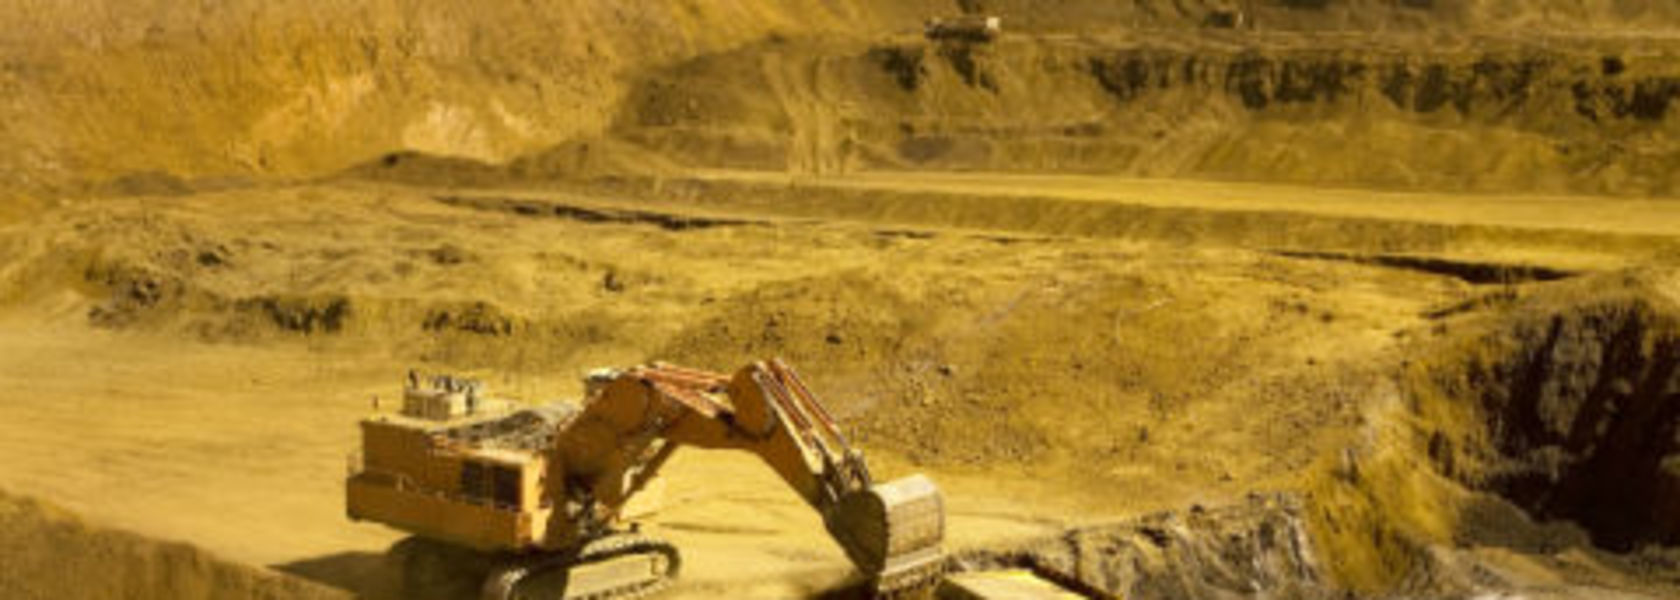 Rio Tinto launches 3D mapping technology